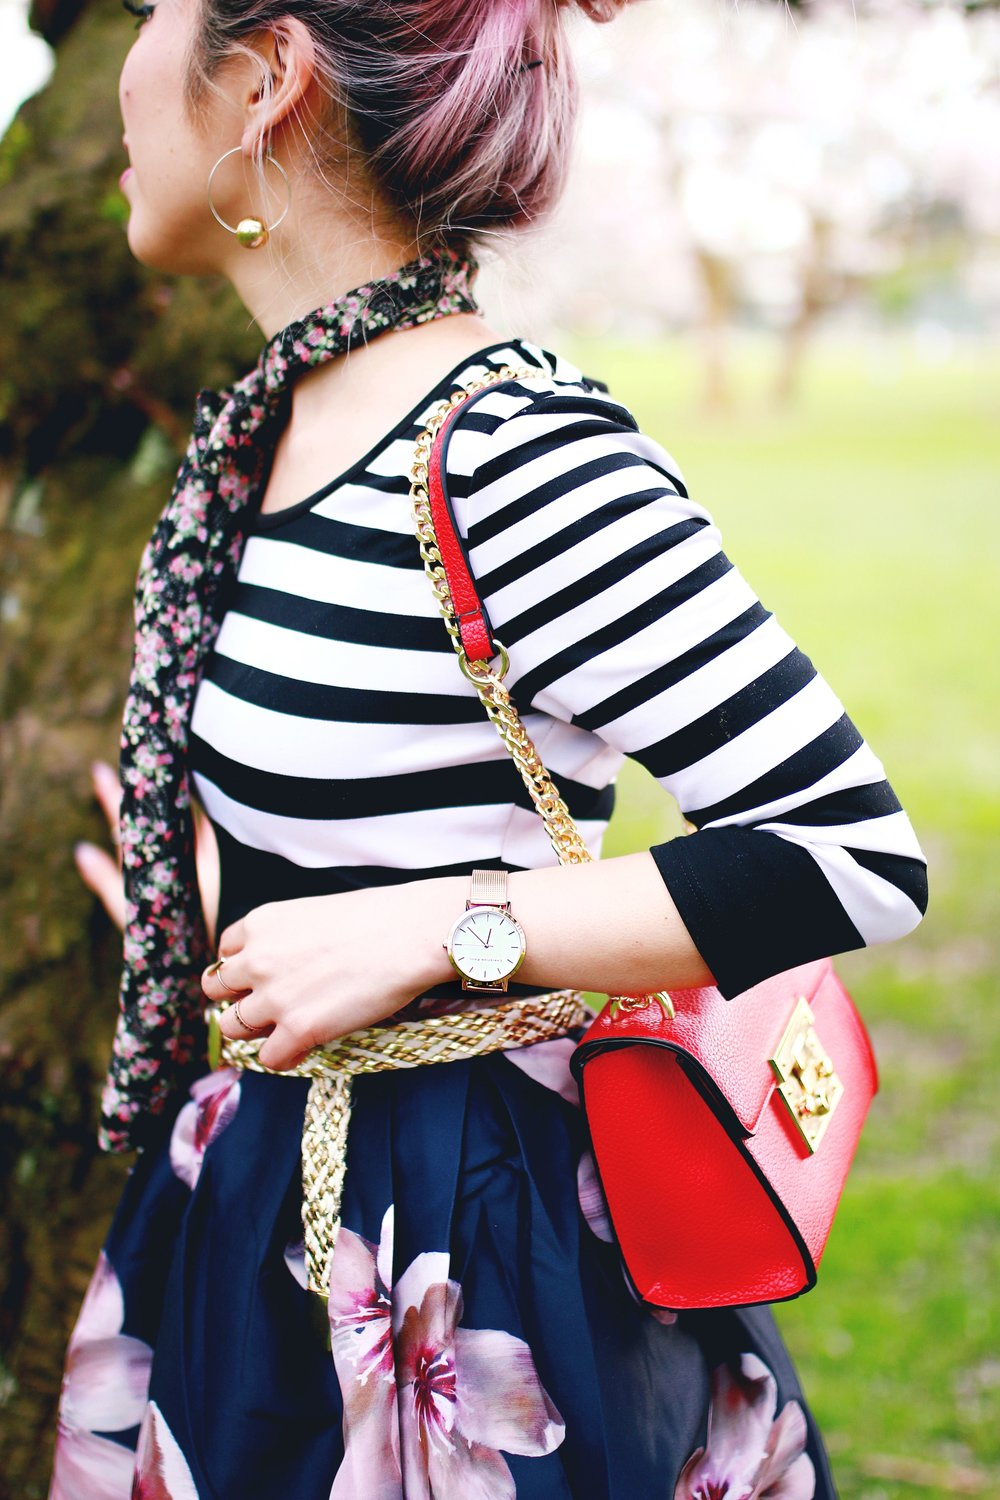 Charlotte Russe Striped Cropped Top-She In Floral Print Midi Skirt-Floral Print Think Scarf-Mellow World Red Mini Bag-Christian Paul 35MM ROSE GOLD/WHITE RAW MESH watch- Argento Vivo Earrings-Just Fab Lace up pumps- Aikas Love Closet-Seattle Fashion Style Blogger-Japanese-Pink hair 17